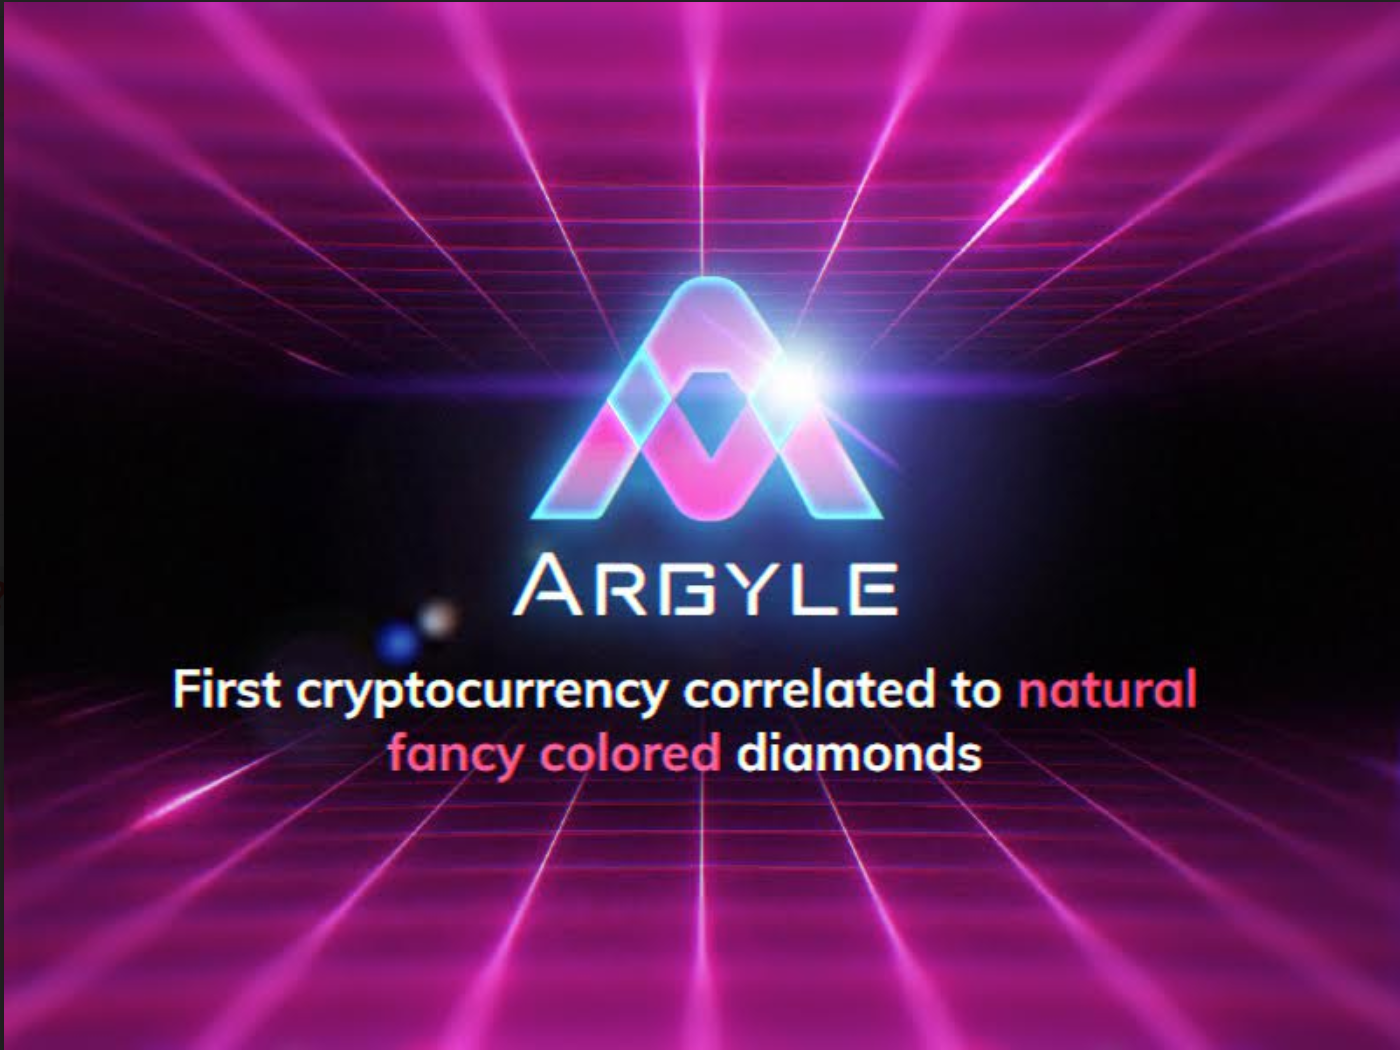 Argyle Coin Becomes the First Cryptocurrency Ever to be Backed by a Performance Bond and Fancy Colored Diamonds Worth $25 Million